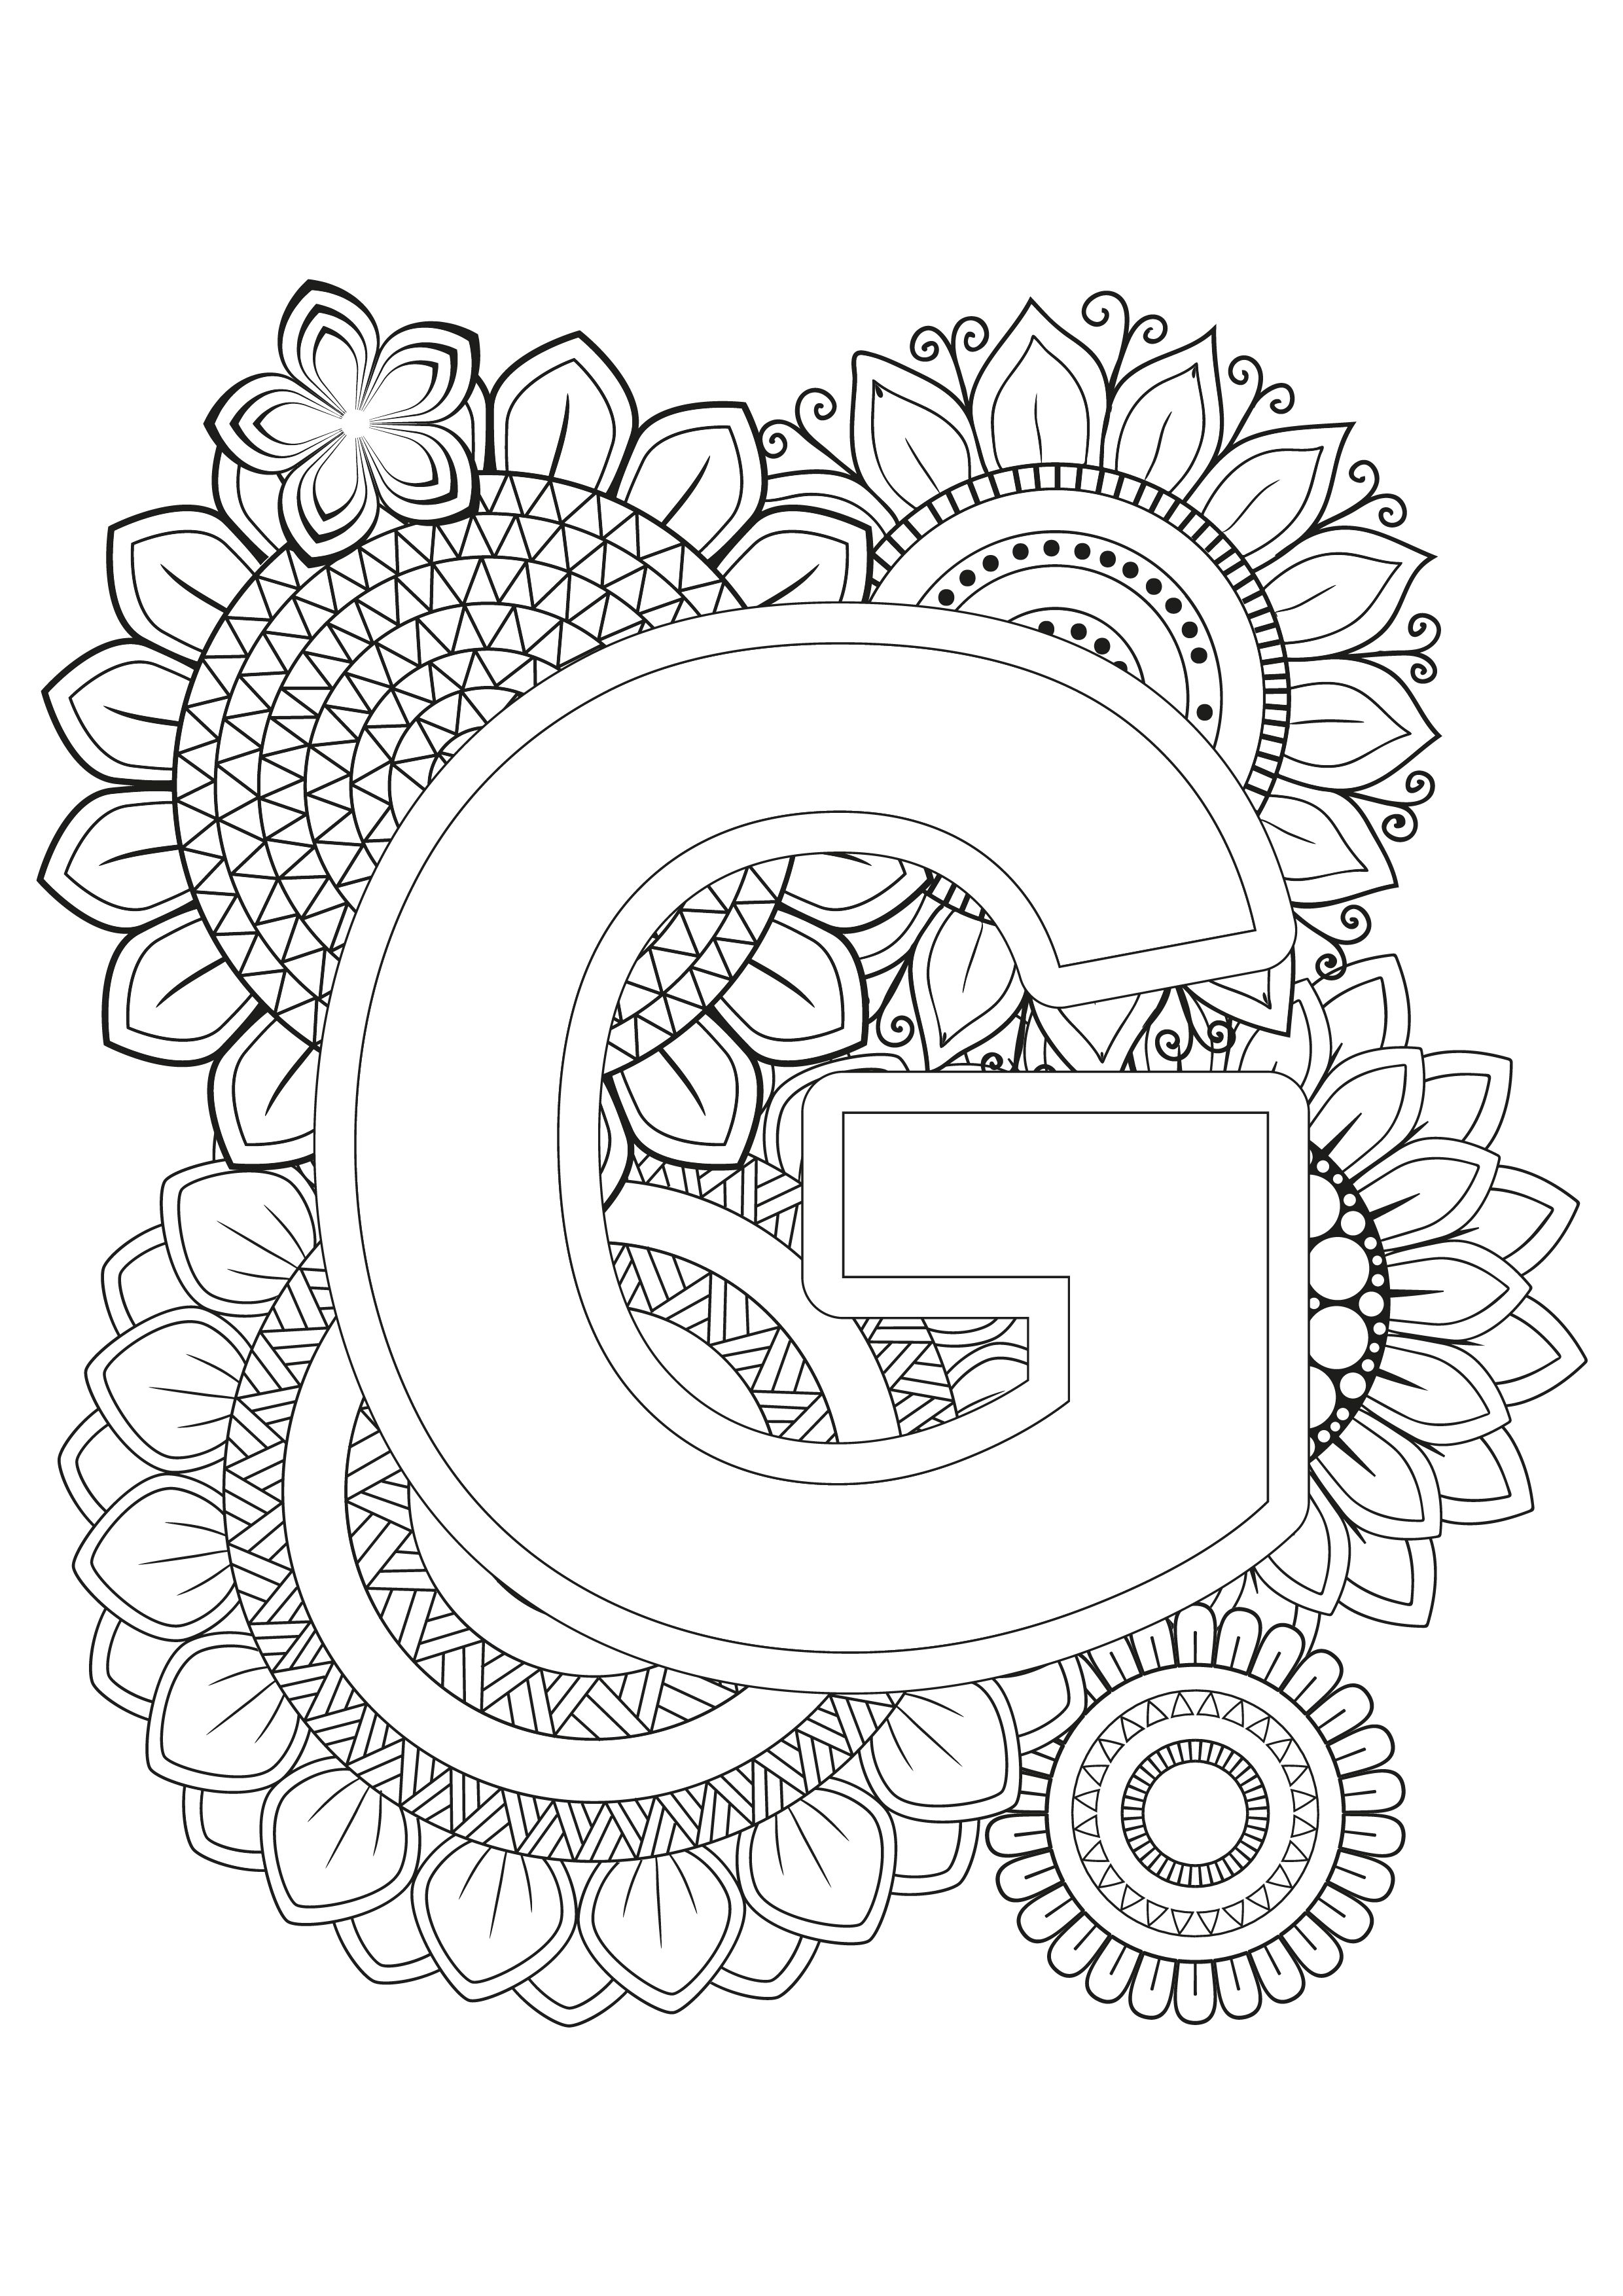 Mindfulness Coloring Page Alphabet Alphabet Coloring Pages Easy Coloring Pages Valentine Coloring Pages